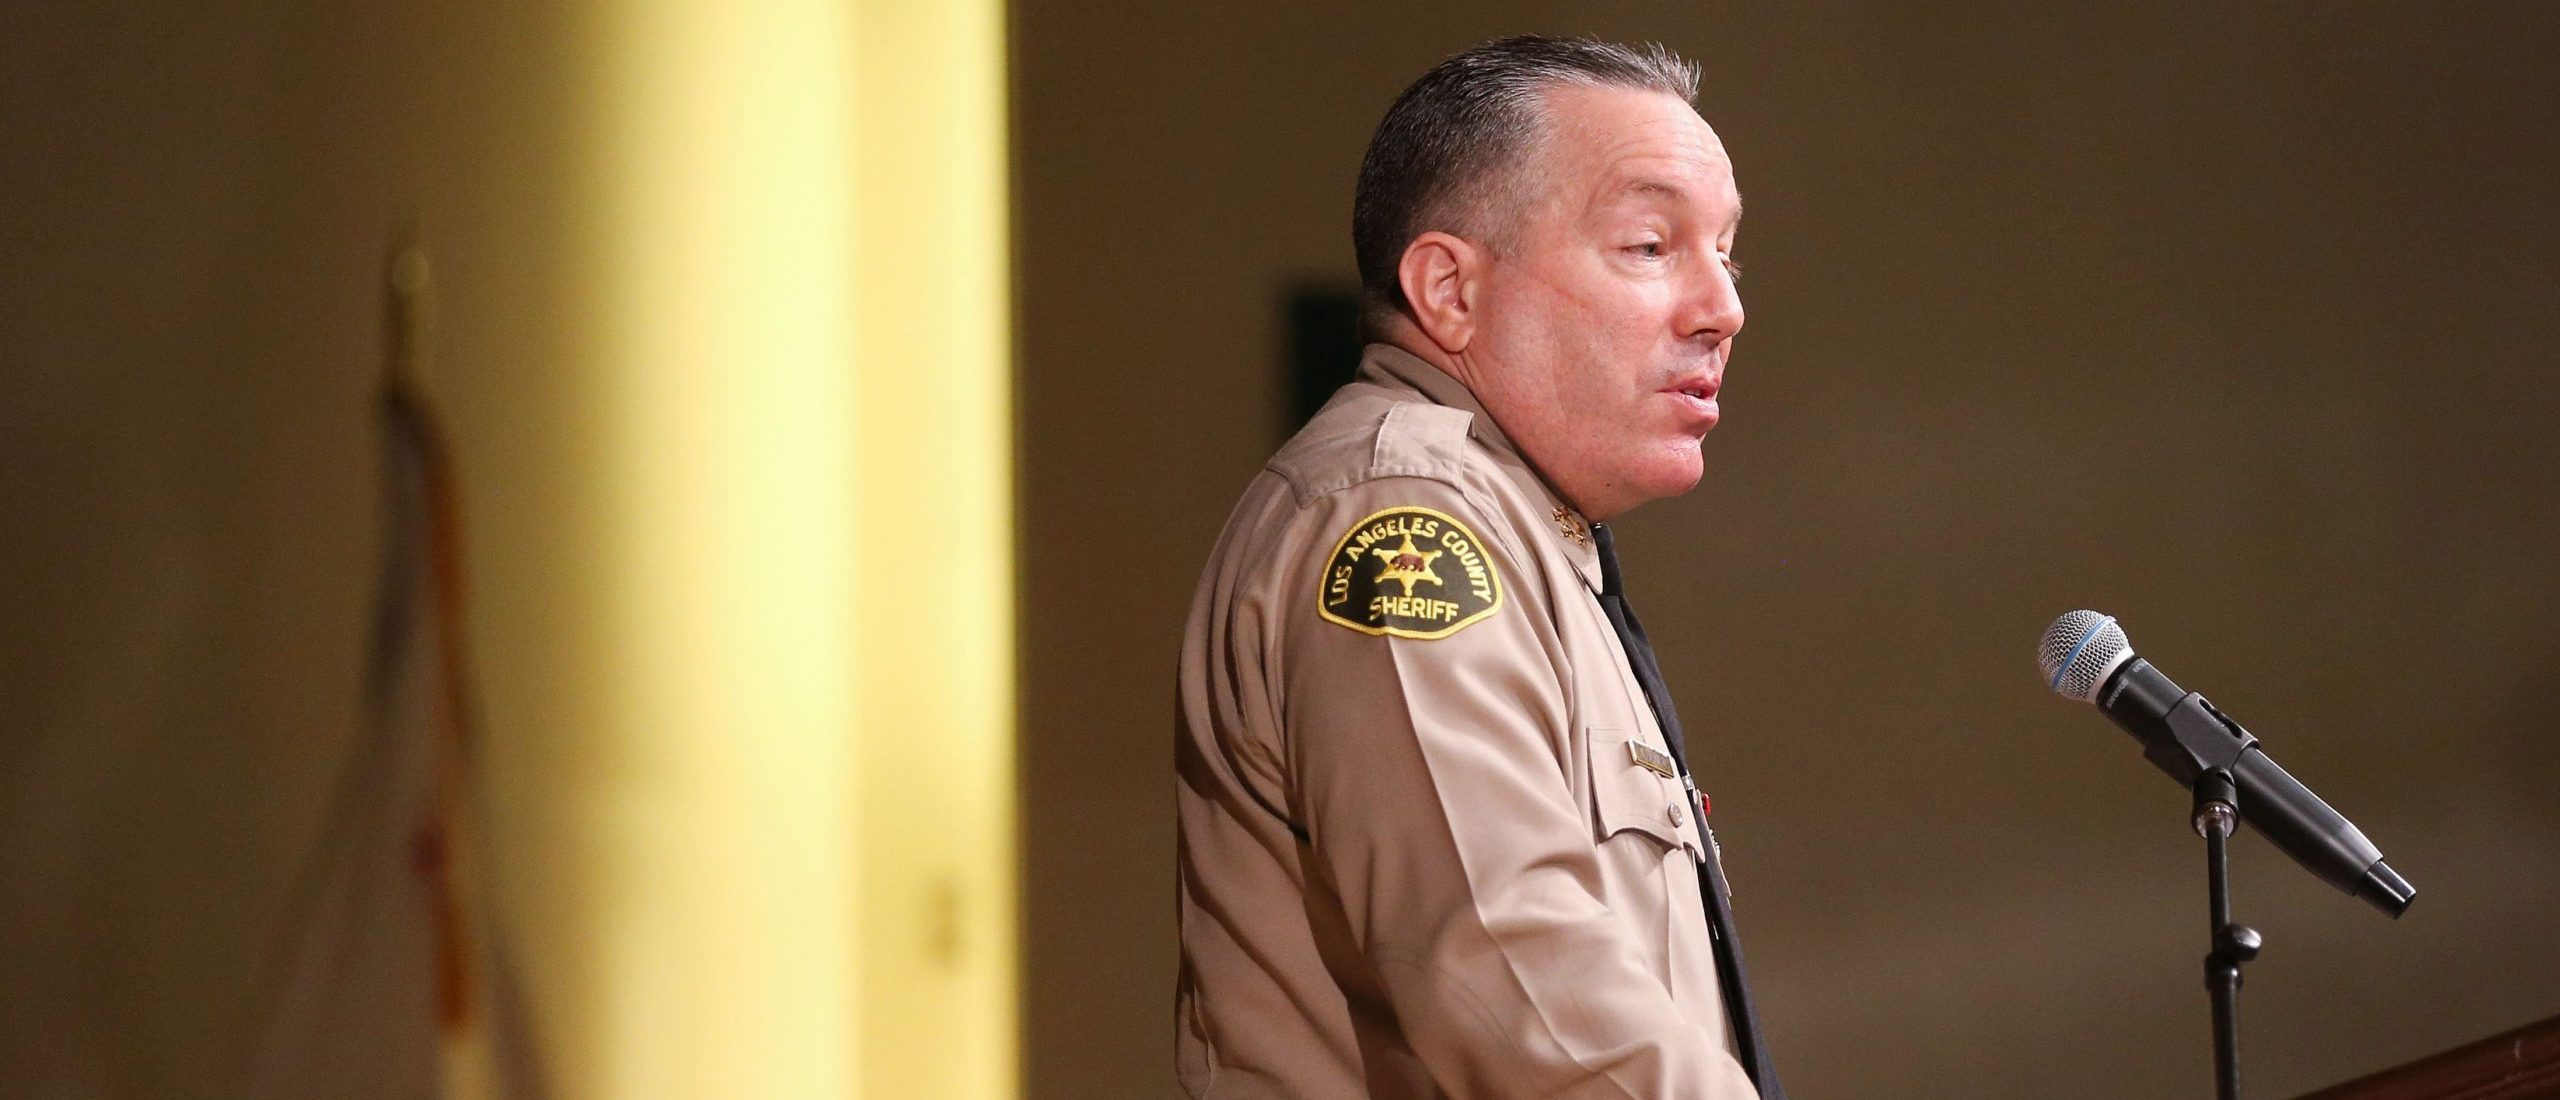 Los Angeles Sheriff Says Anti-Police Protesters Are 'Almost Worthy Of ISIS'